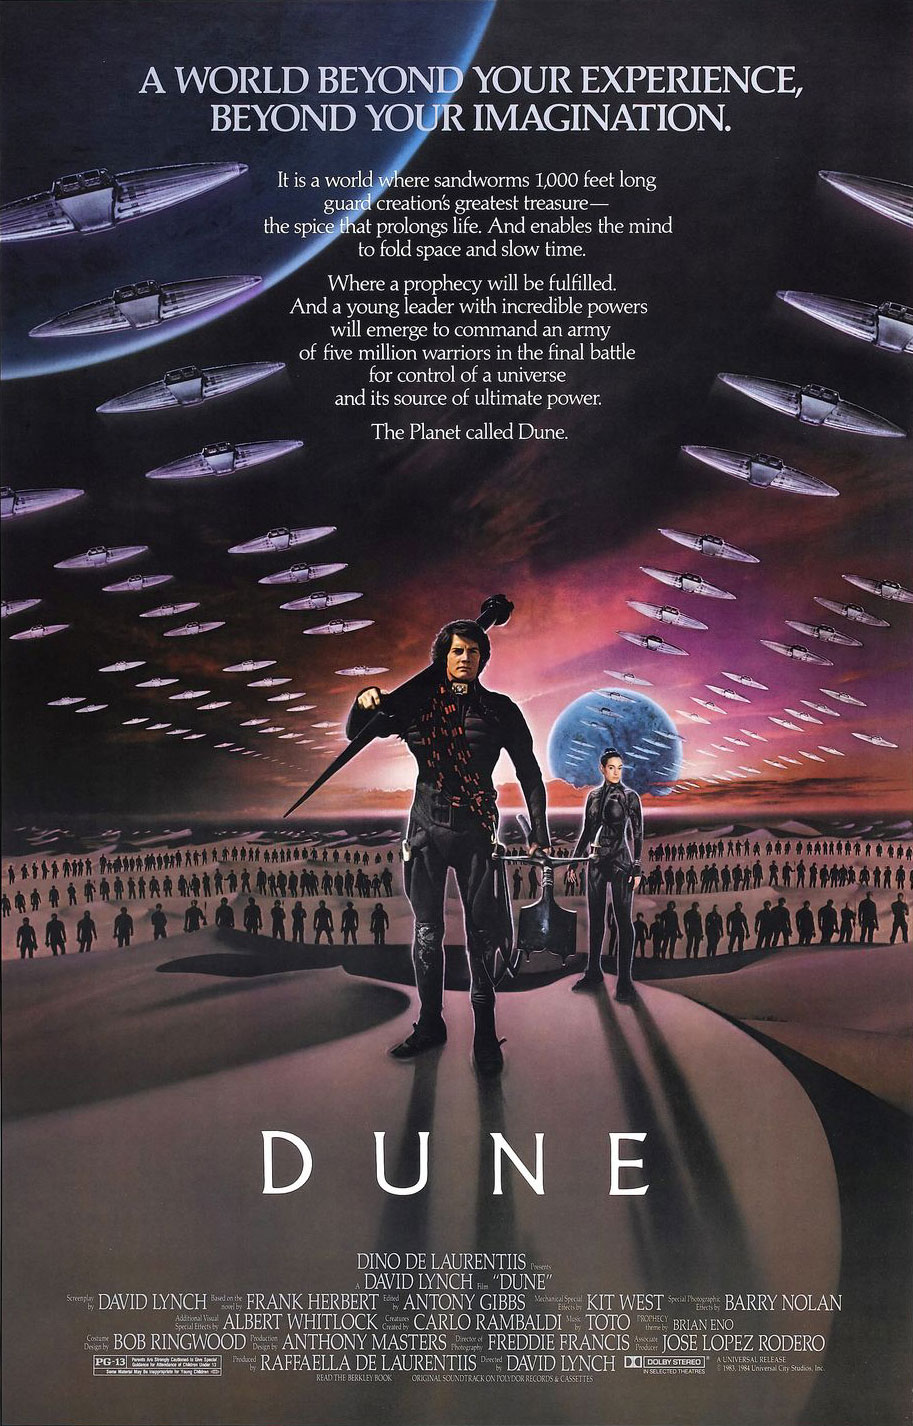 Dune (Extended Cut) (1984) - Directed by: Alan Smithee (David Lynch)Starring: Kyle MacLachlan, Virginia Madsen, Francesca Annis, Sting, Patrick Stewart, Max Von Sydow, Kenneth McMillan, Jurgen ProchowRated: PG-13Running Time: 2 h 57 mTMM Score: 2 stars out of 5STRENGTHS: A Valiant EffortWEAKNESSES: Practically Everything